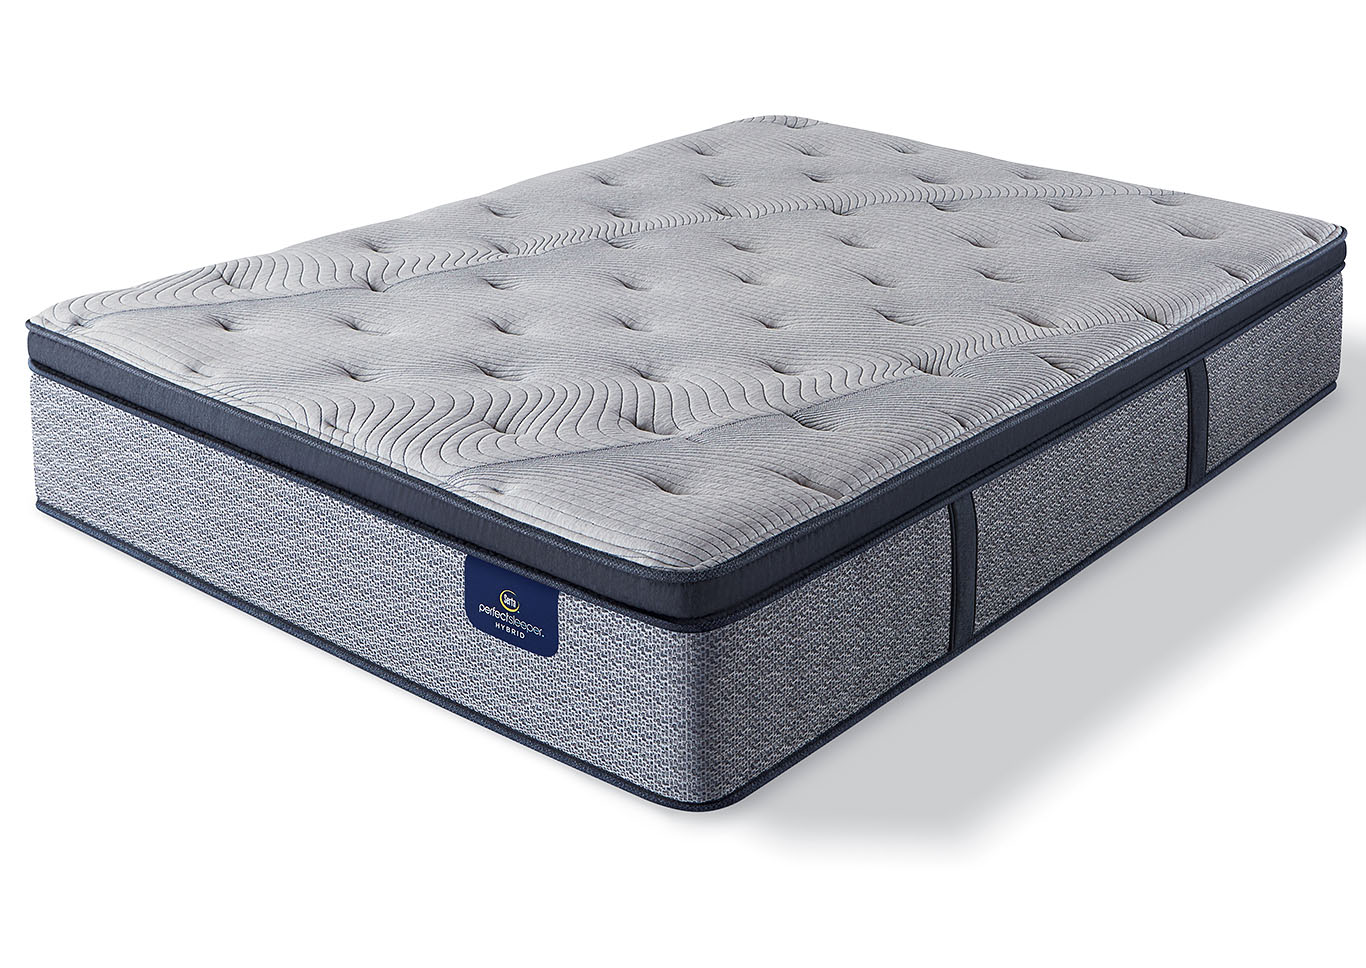 Standale II Pillow Top Firm California King Mattress,Huffman Koos